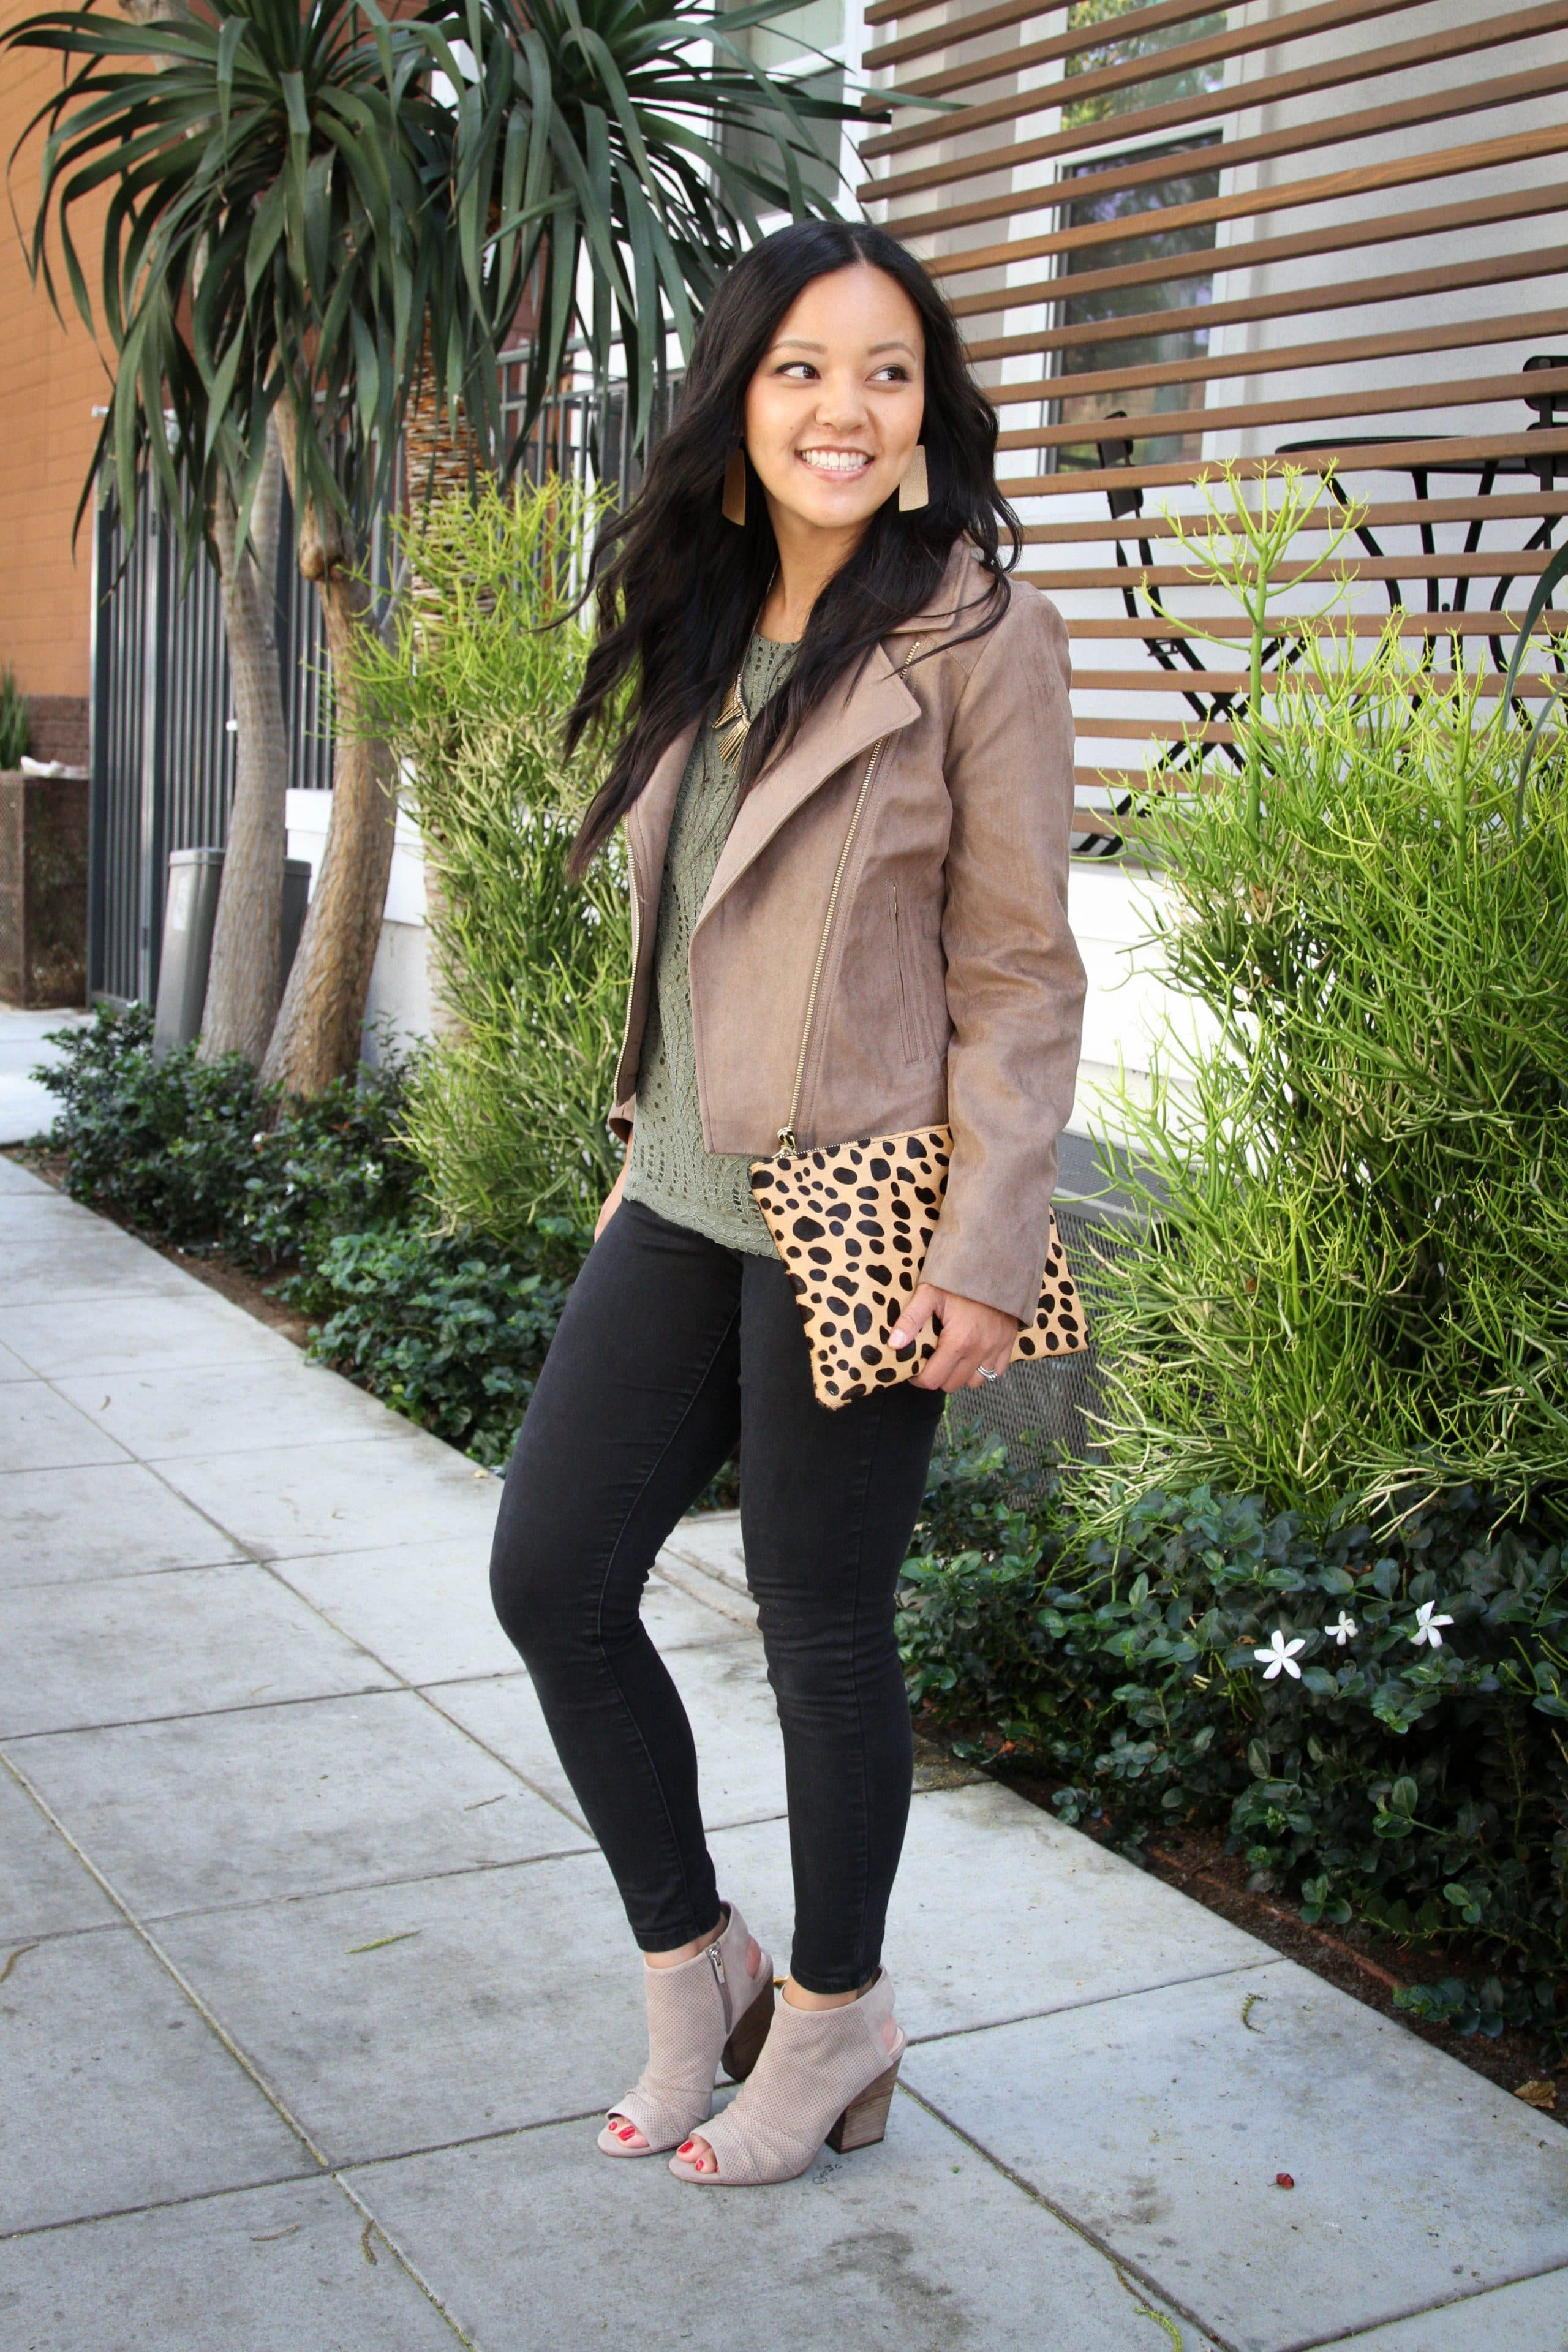 Black Skinnies + Tan Moto Jacket + Green Lace top + Heeled peep toes